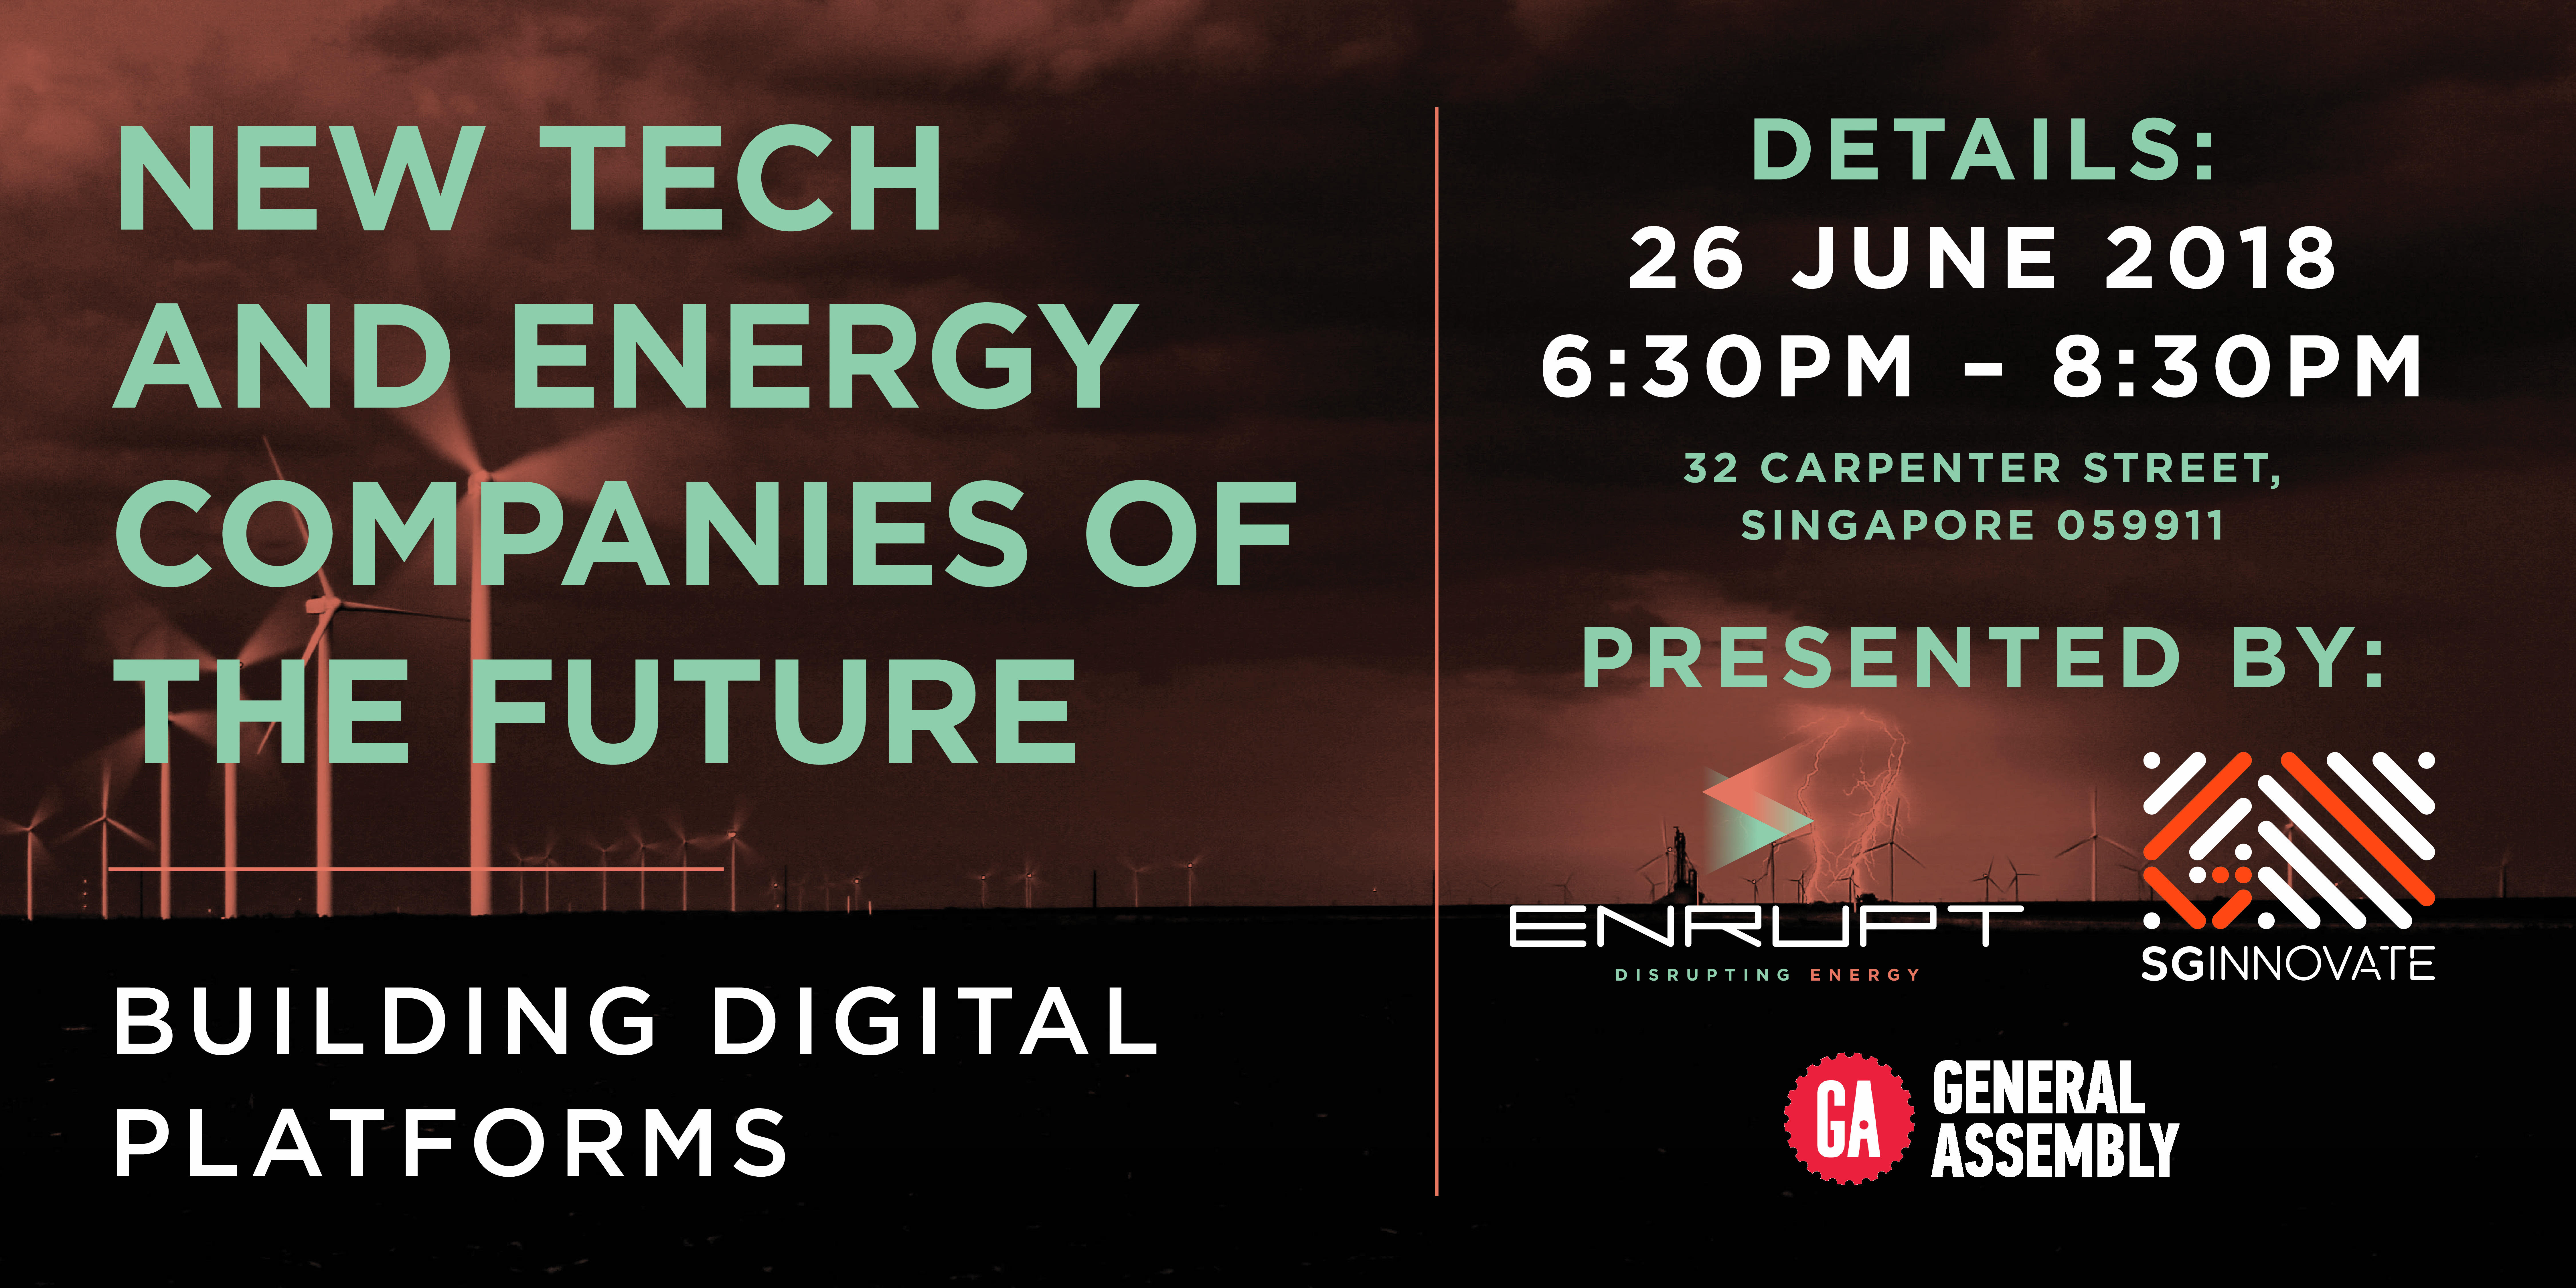 New Tech and Energy Companies of the Future